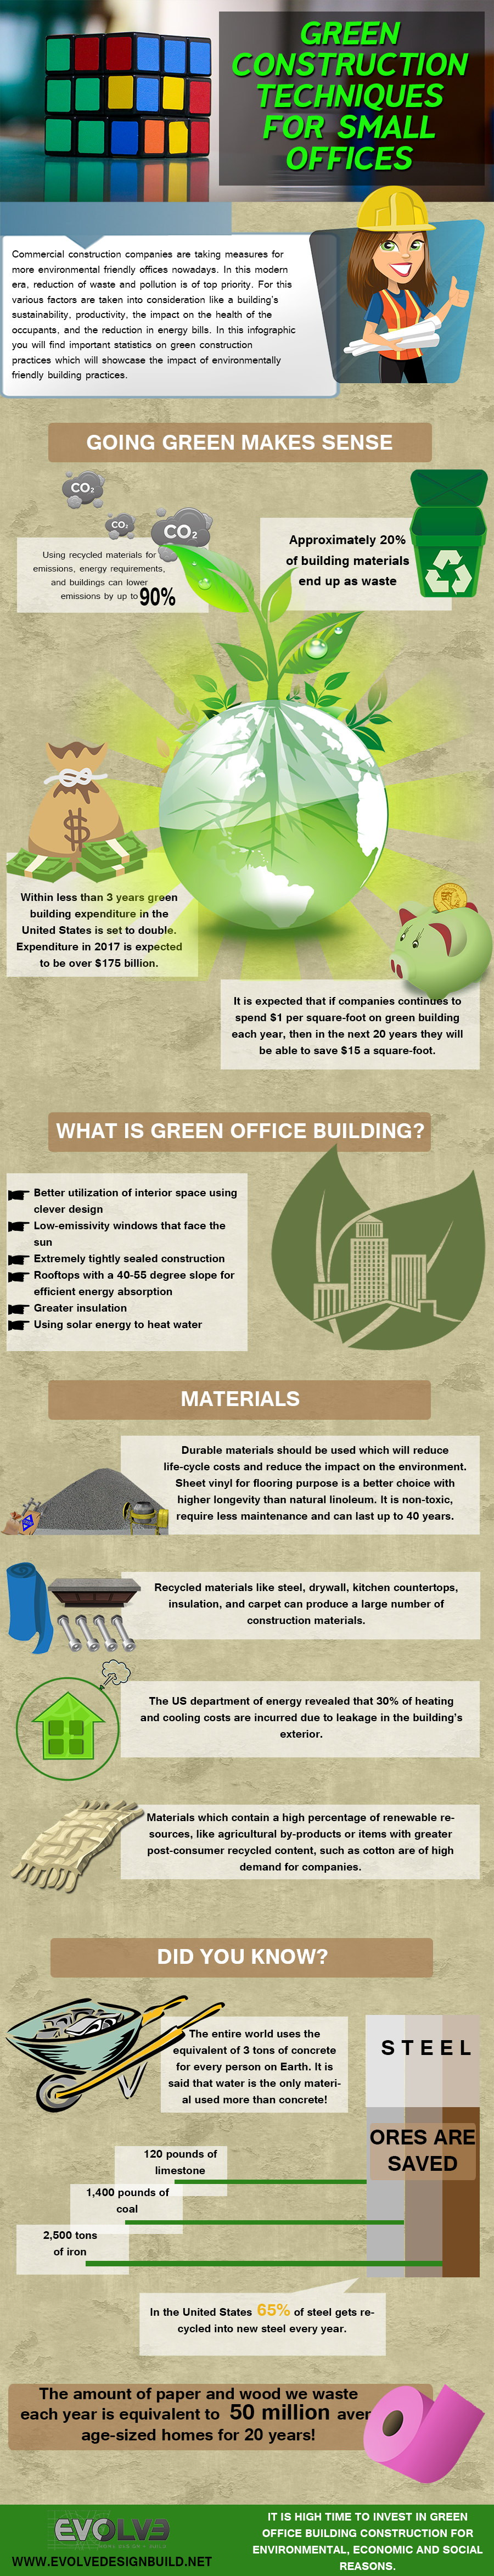 Green Construction Techniques Infographic